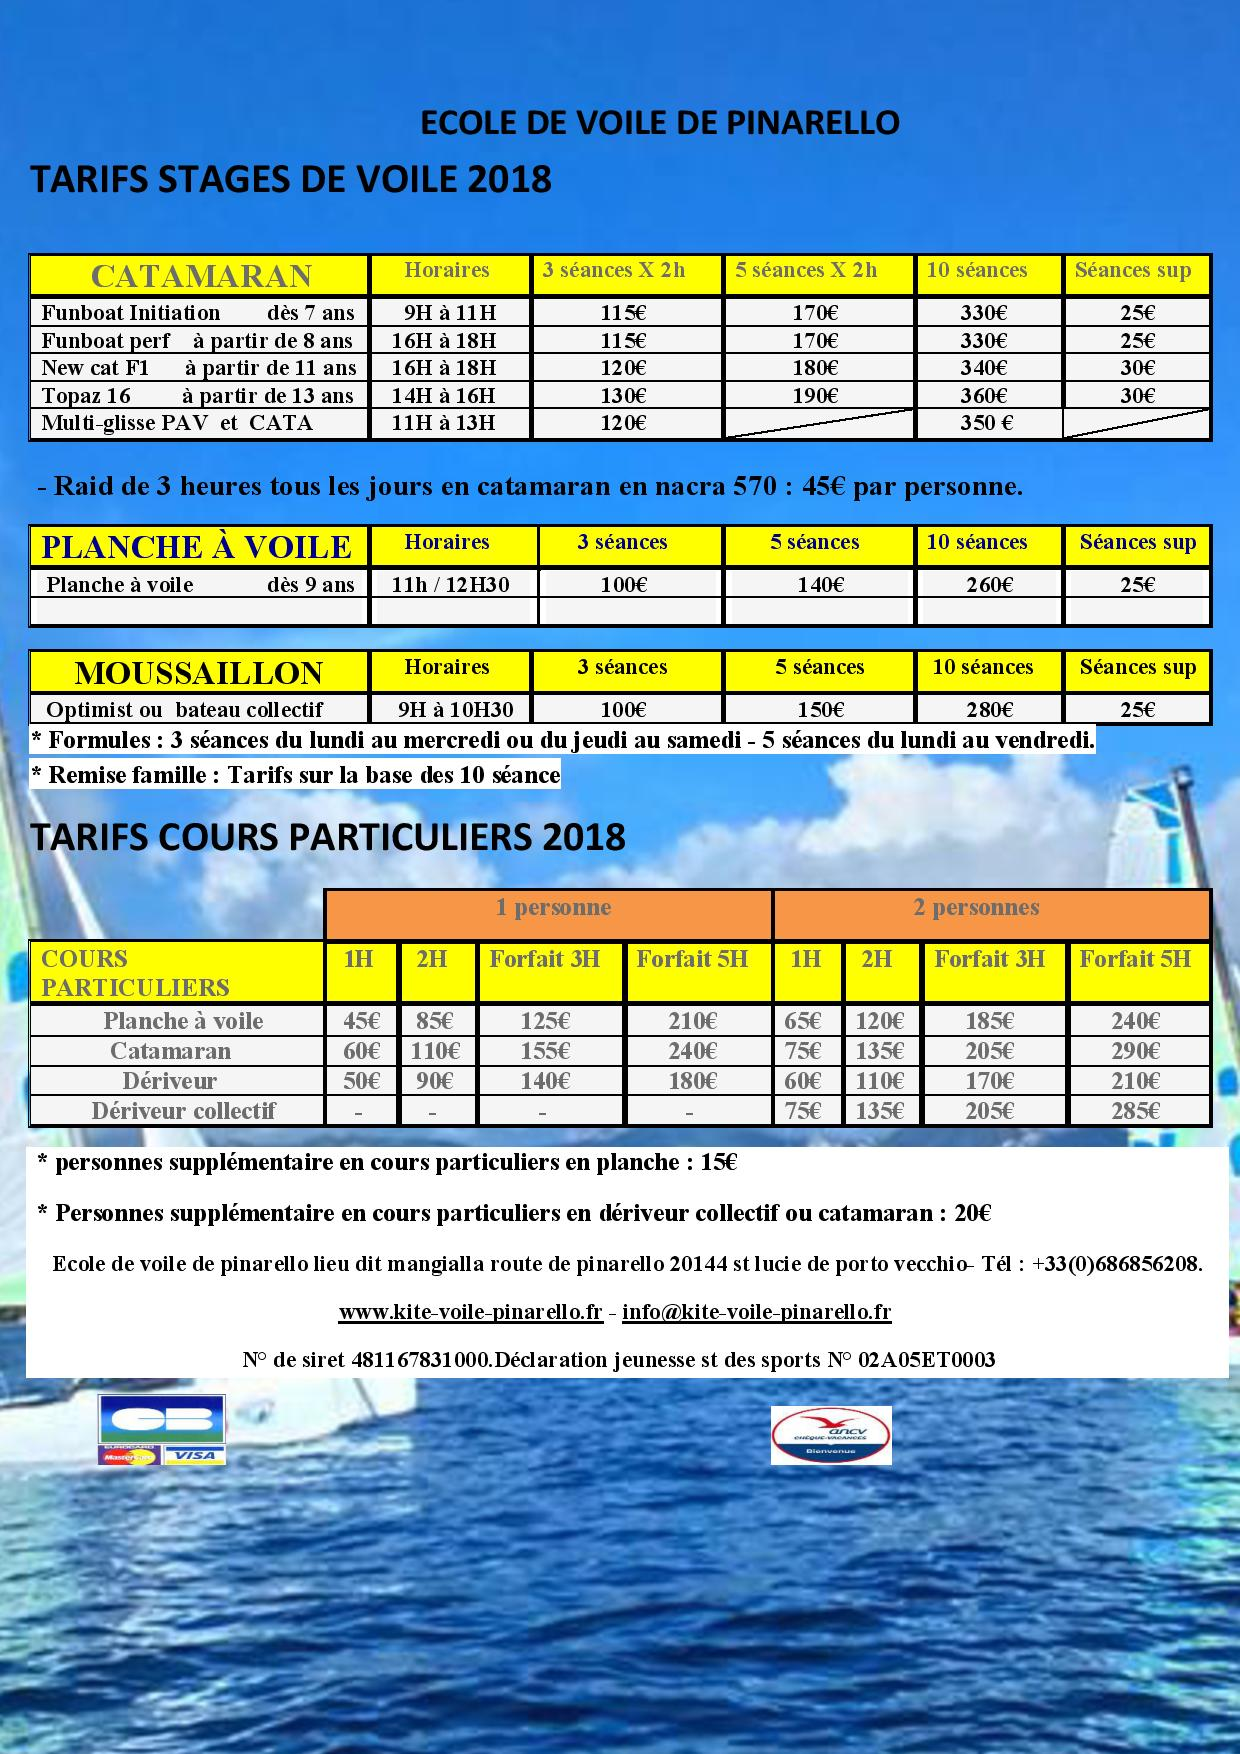 tarifs stages voile 2018-page-001